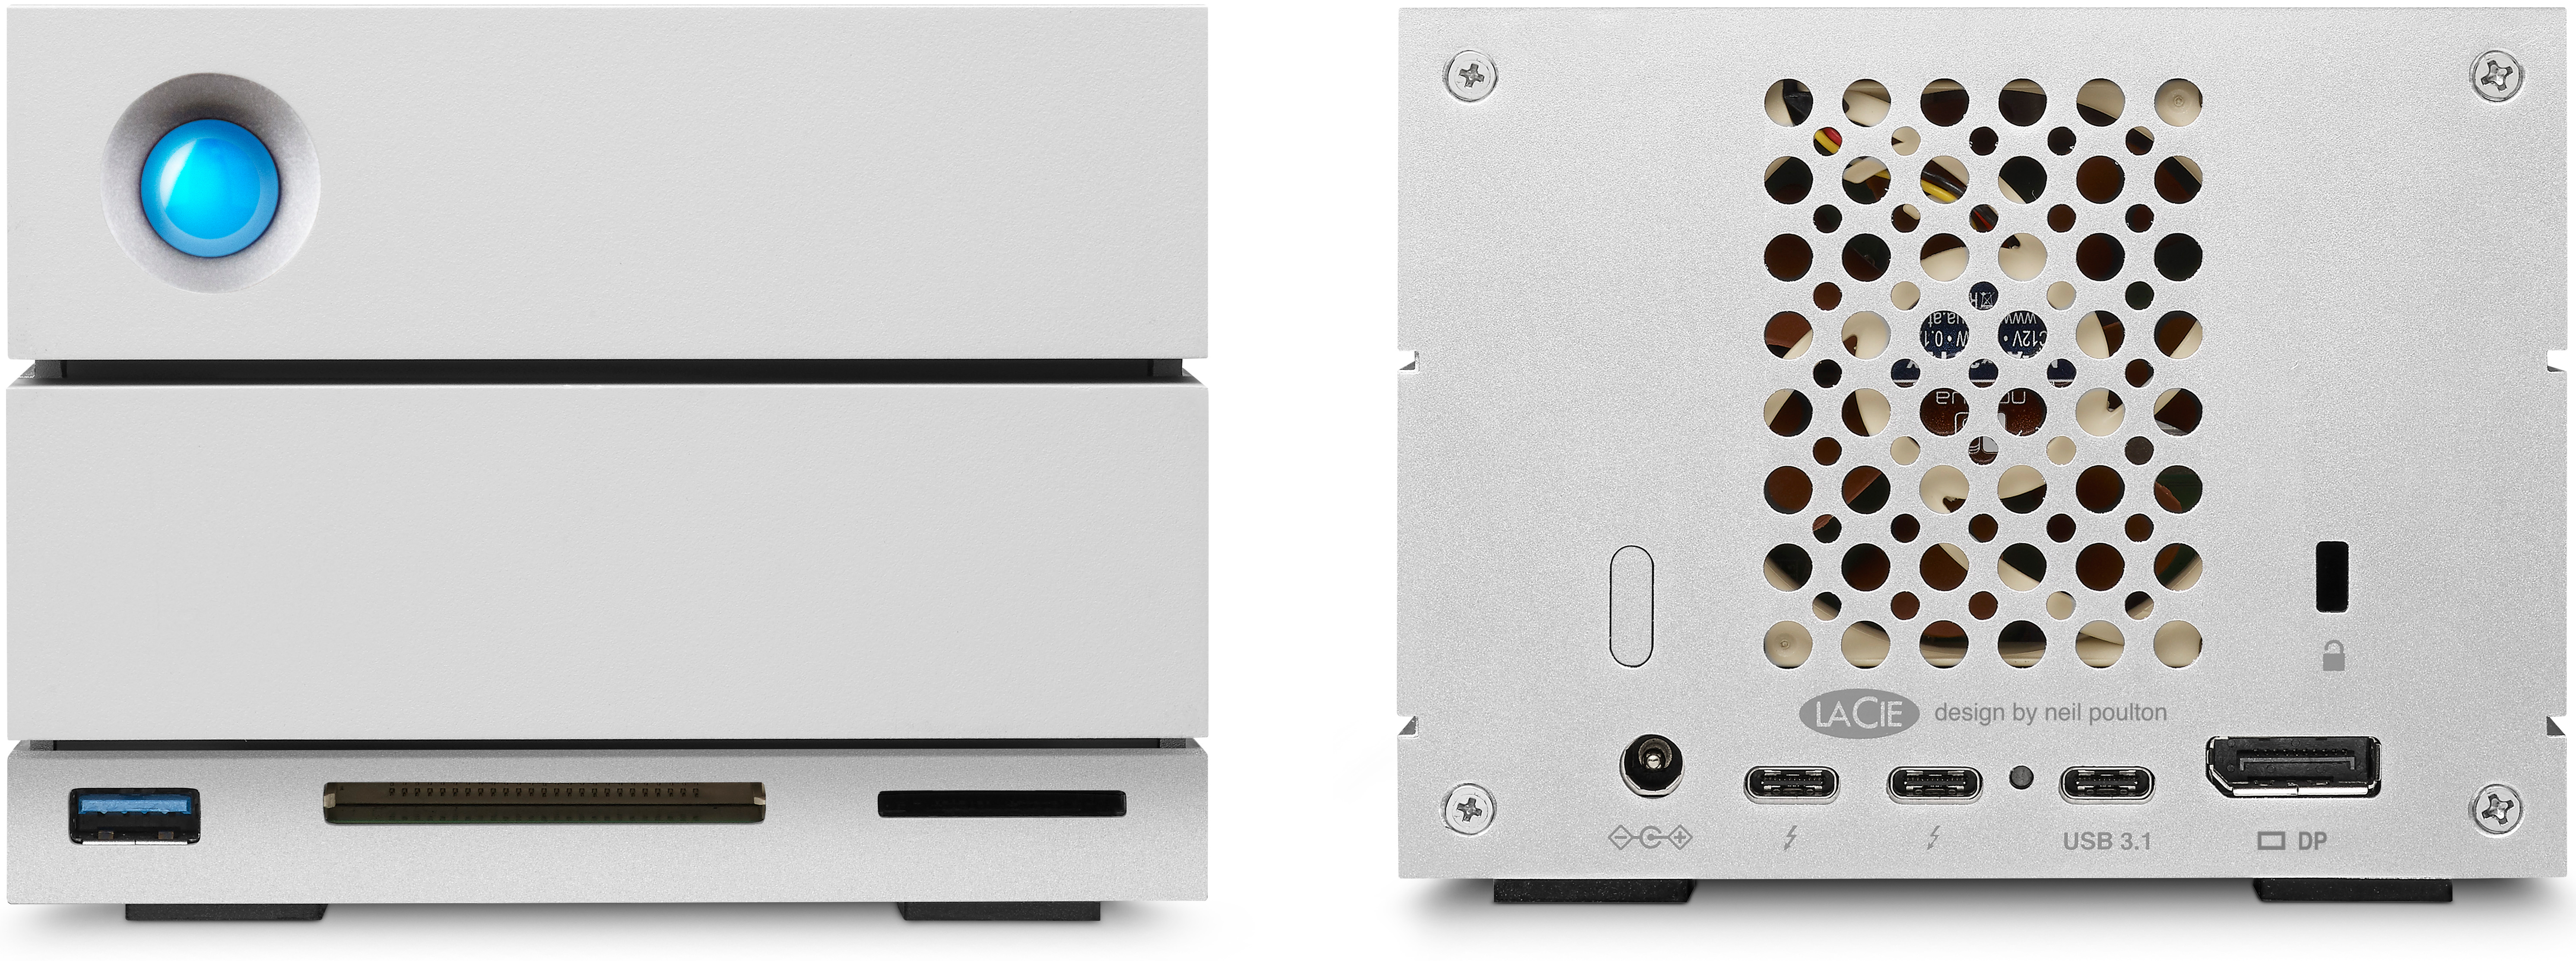 Lacie Announces 2big Dock 2 Bay Tb3 Das With Card Reader